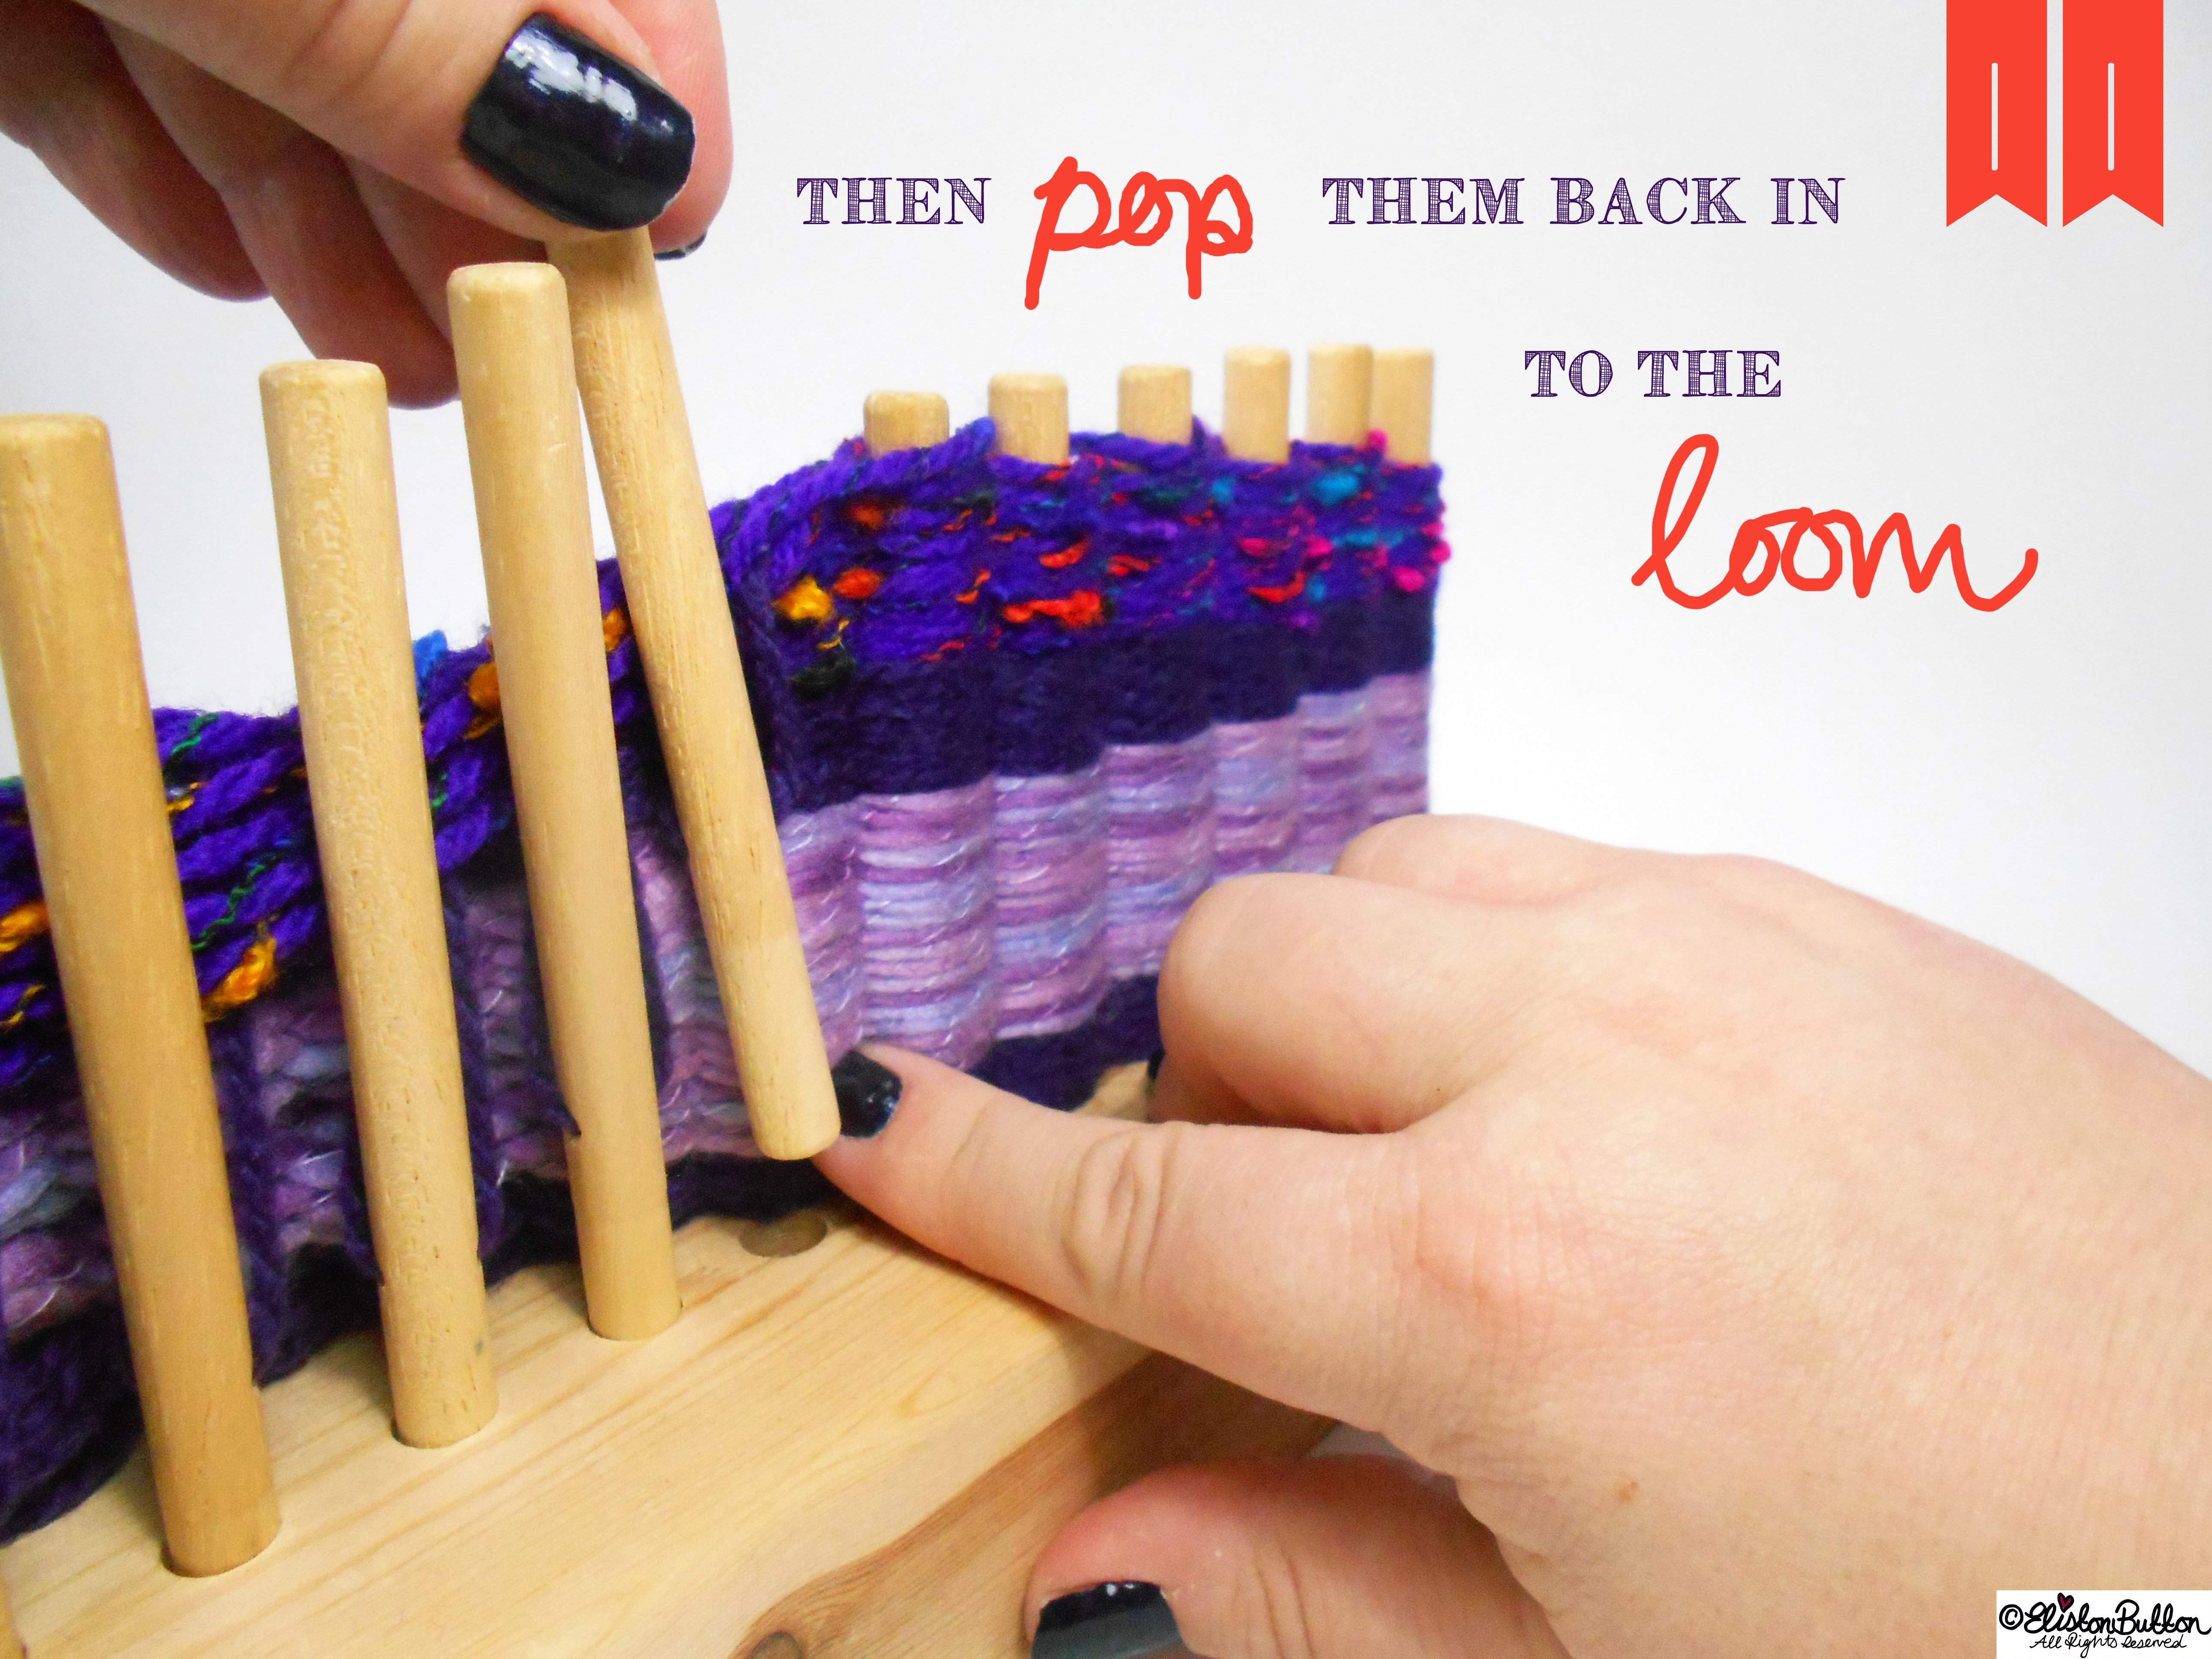 Put the Pegs Back into the Wooden Loom. - Tutorial Tuesday - Peg Loom Weaving - Part One at www.elistonbutton.com - Eliston Button - That Crafty Kid – Art, Design, Craft & Adventure.